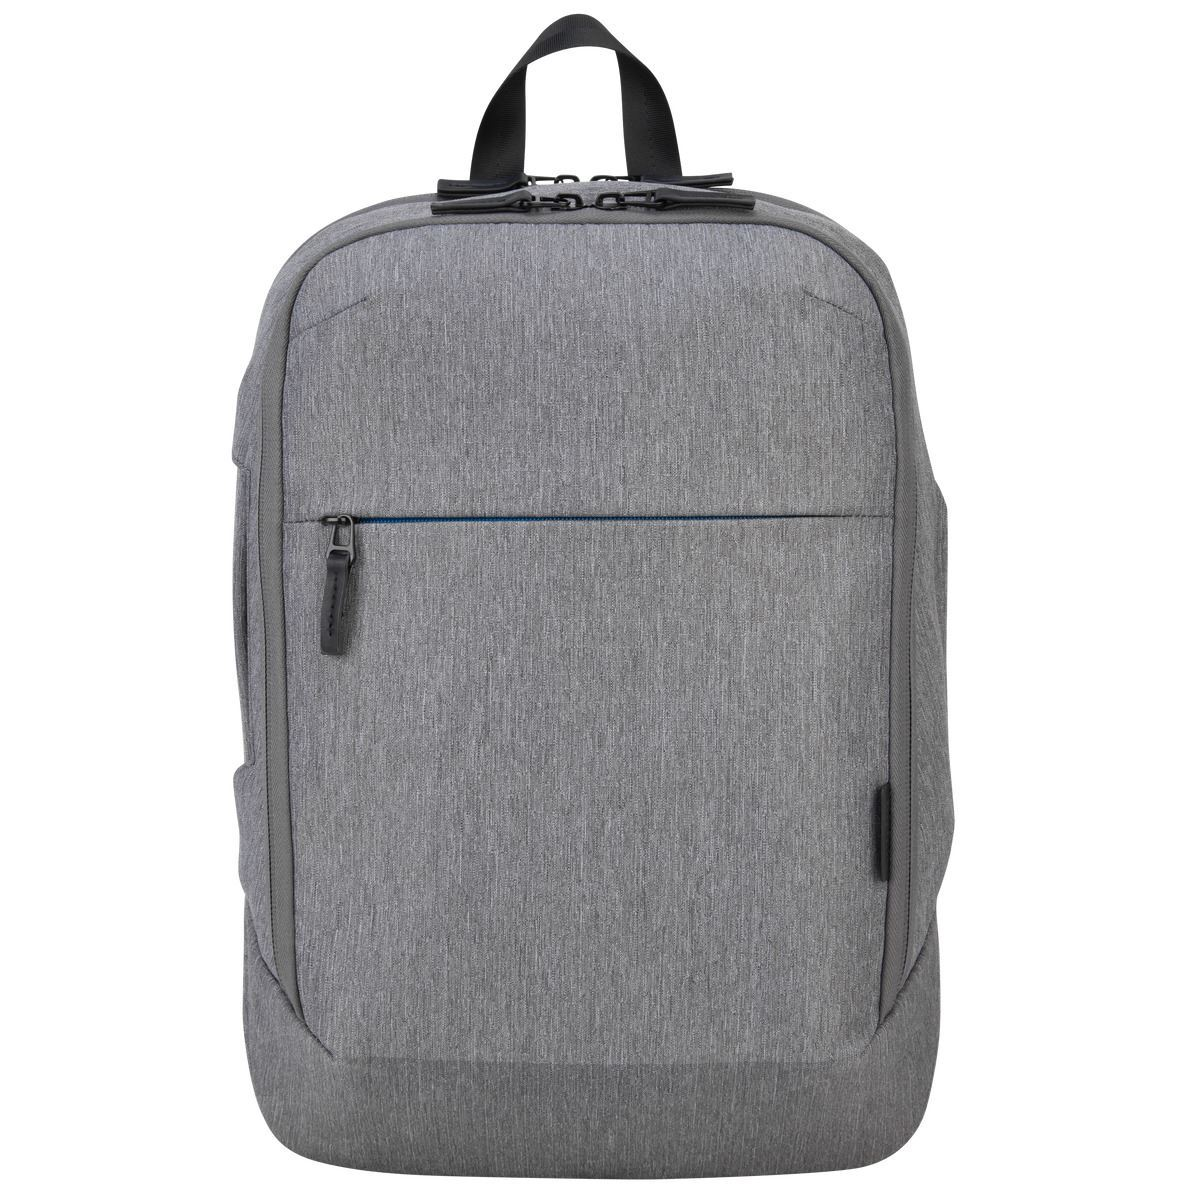 0044201_citylite-convertible-backpack-briefcase-fits-up-to-156-laptop-grey